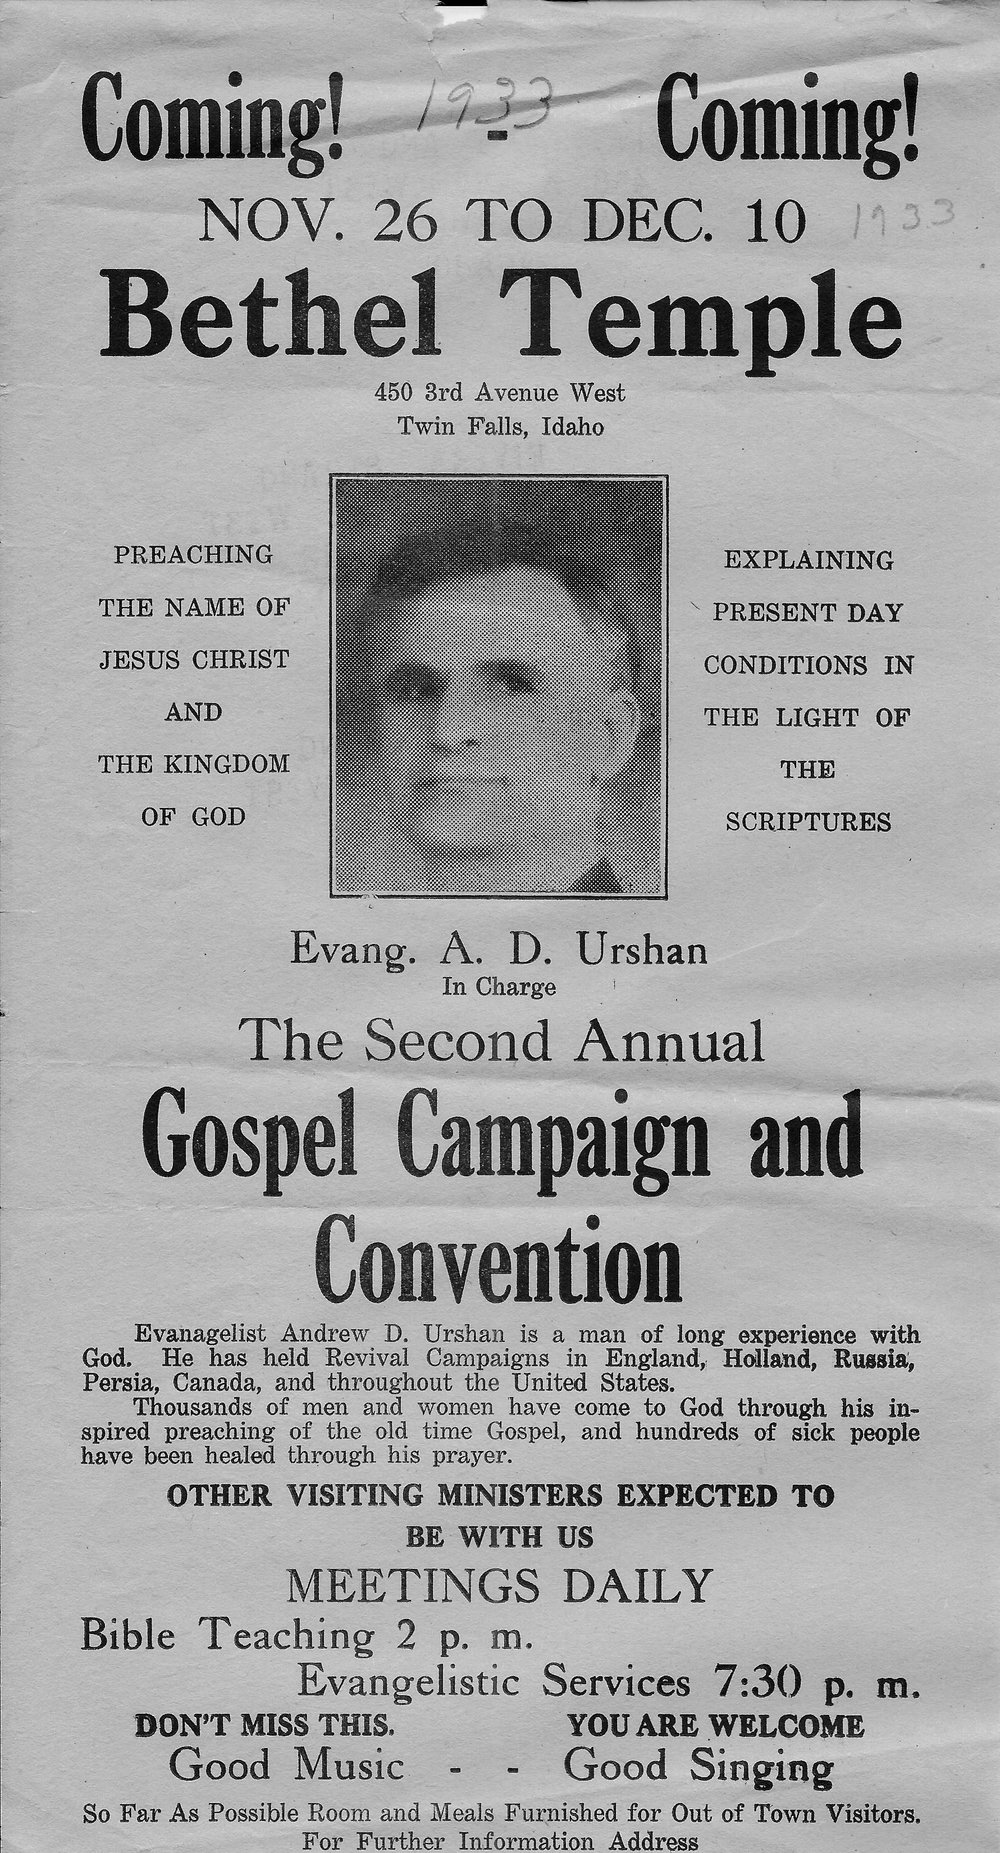 1933 Bethel Temple Church - 2nd Annual Bible Conference-AD Urshan.jpg